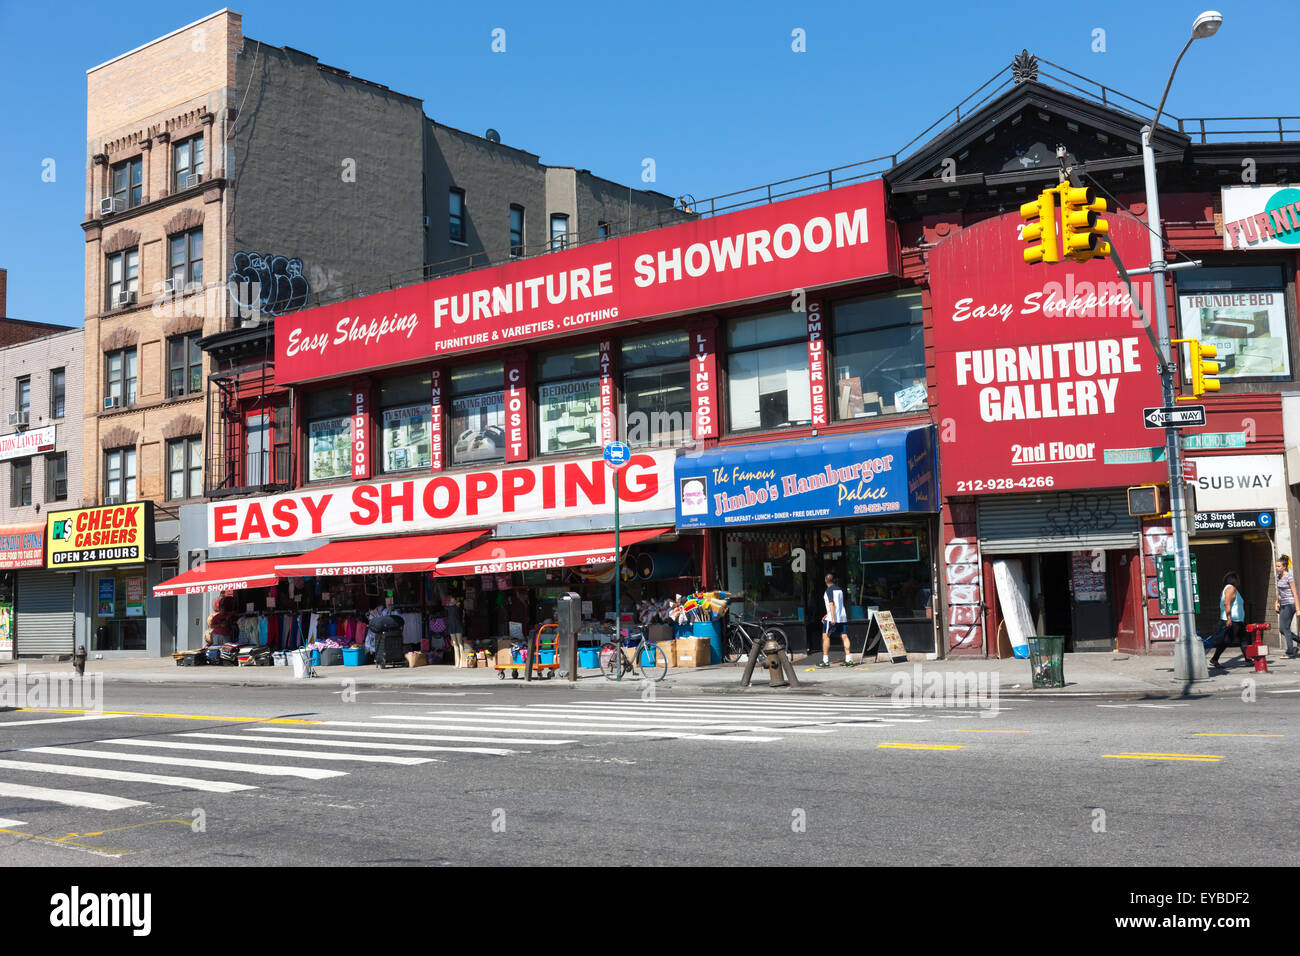 Acquisti facili furniture store in Washington Heights sezione di New York City. Immagini Stock